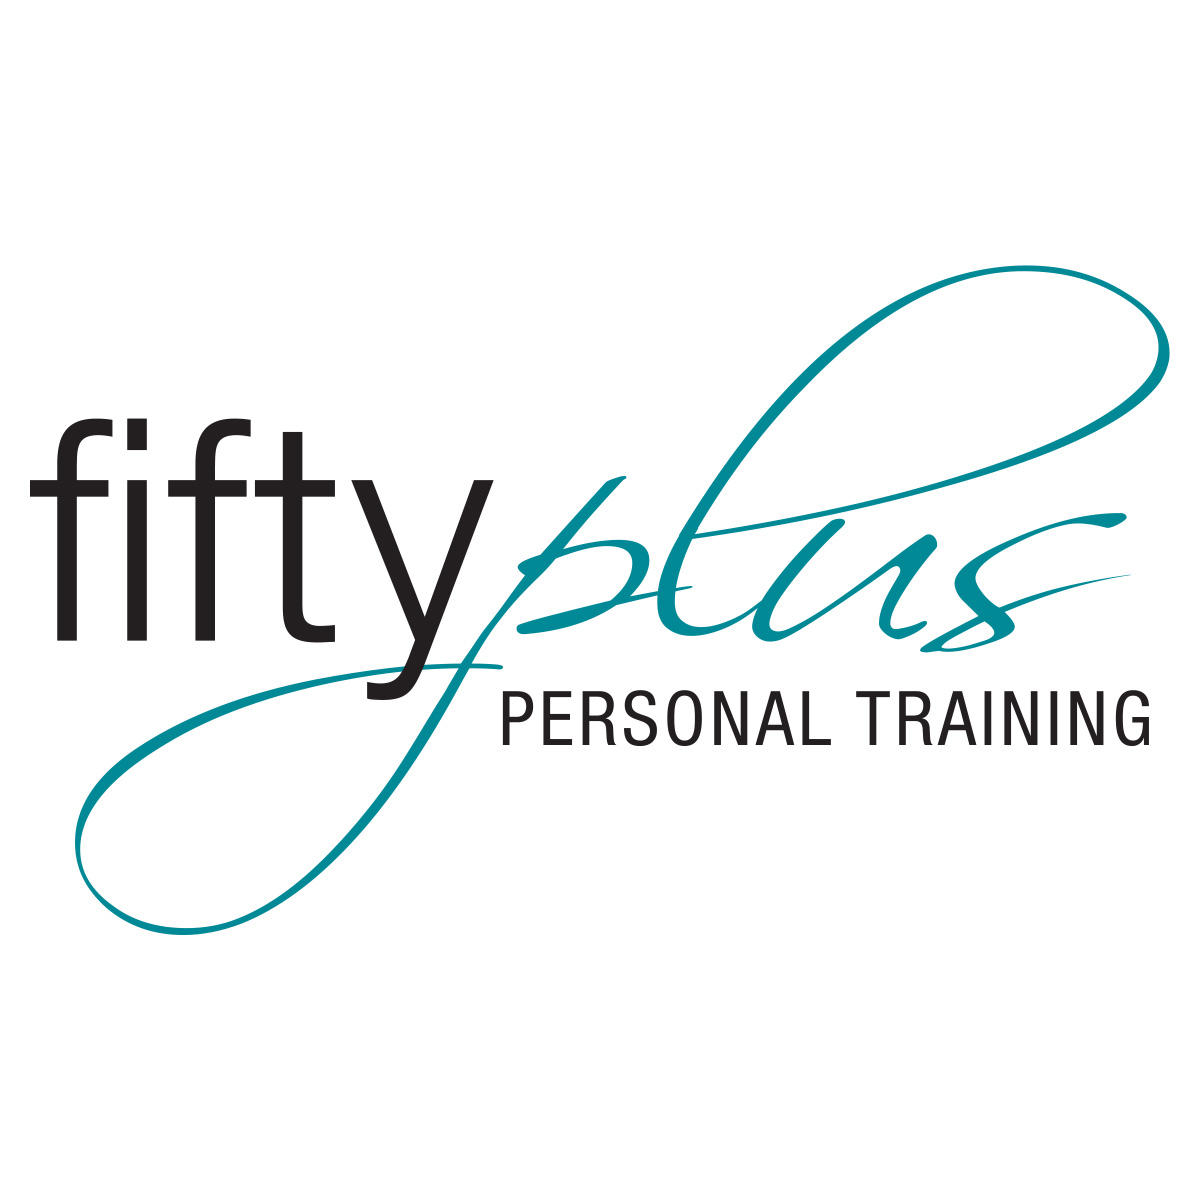 Fifty Plus Personal Training